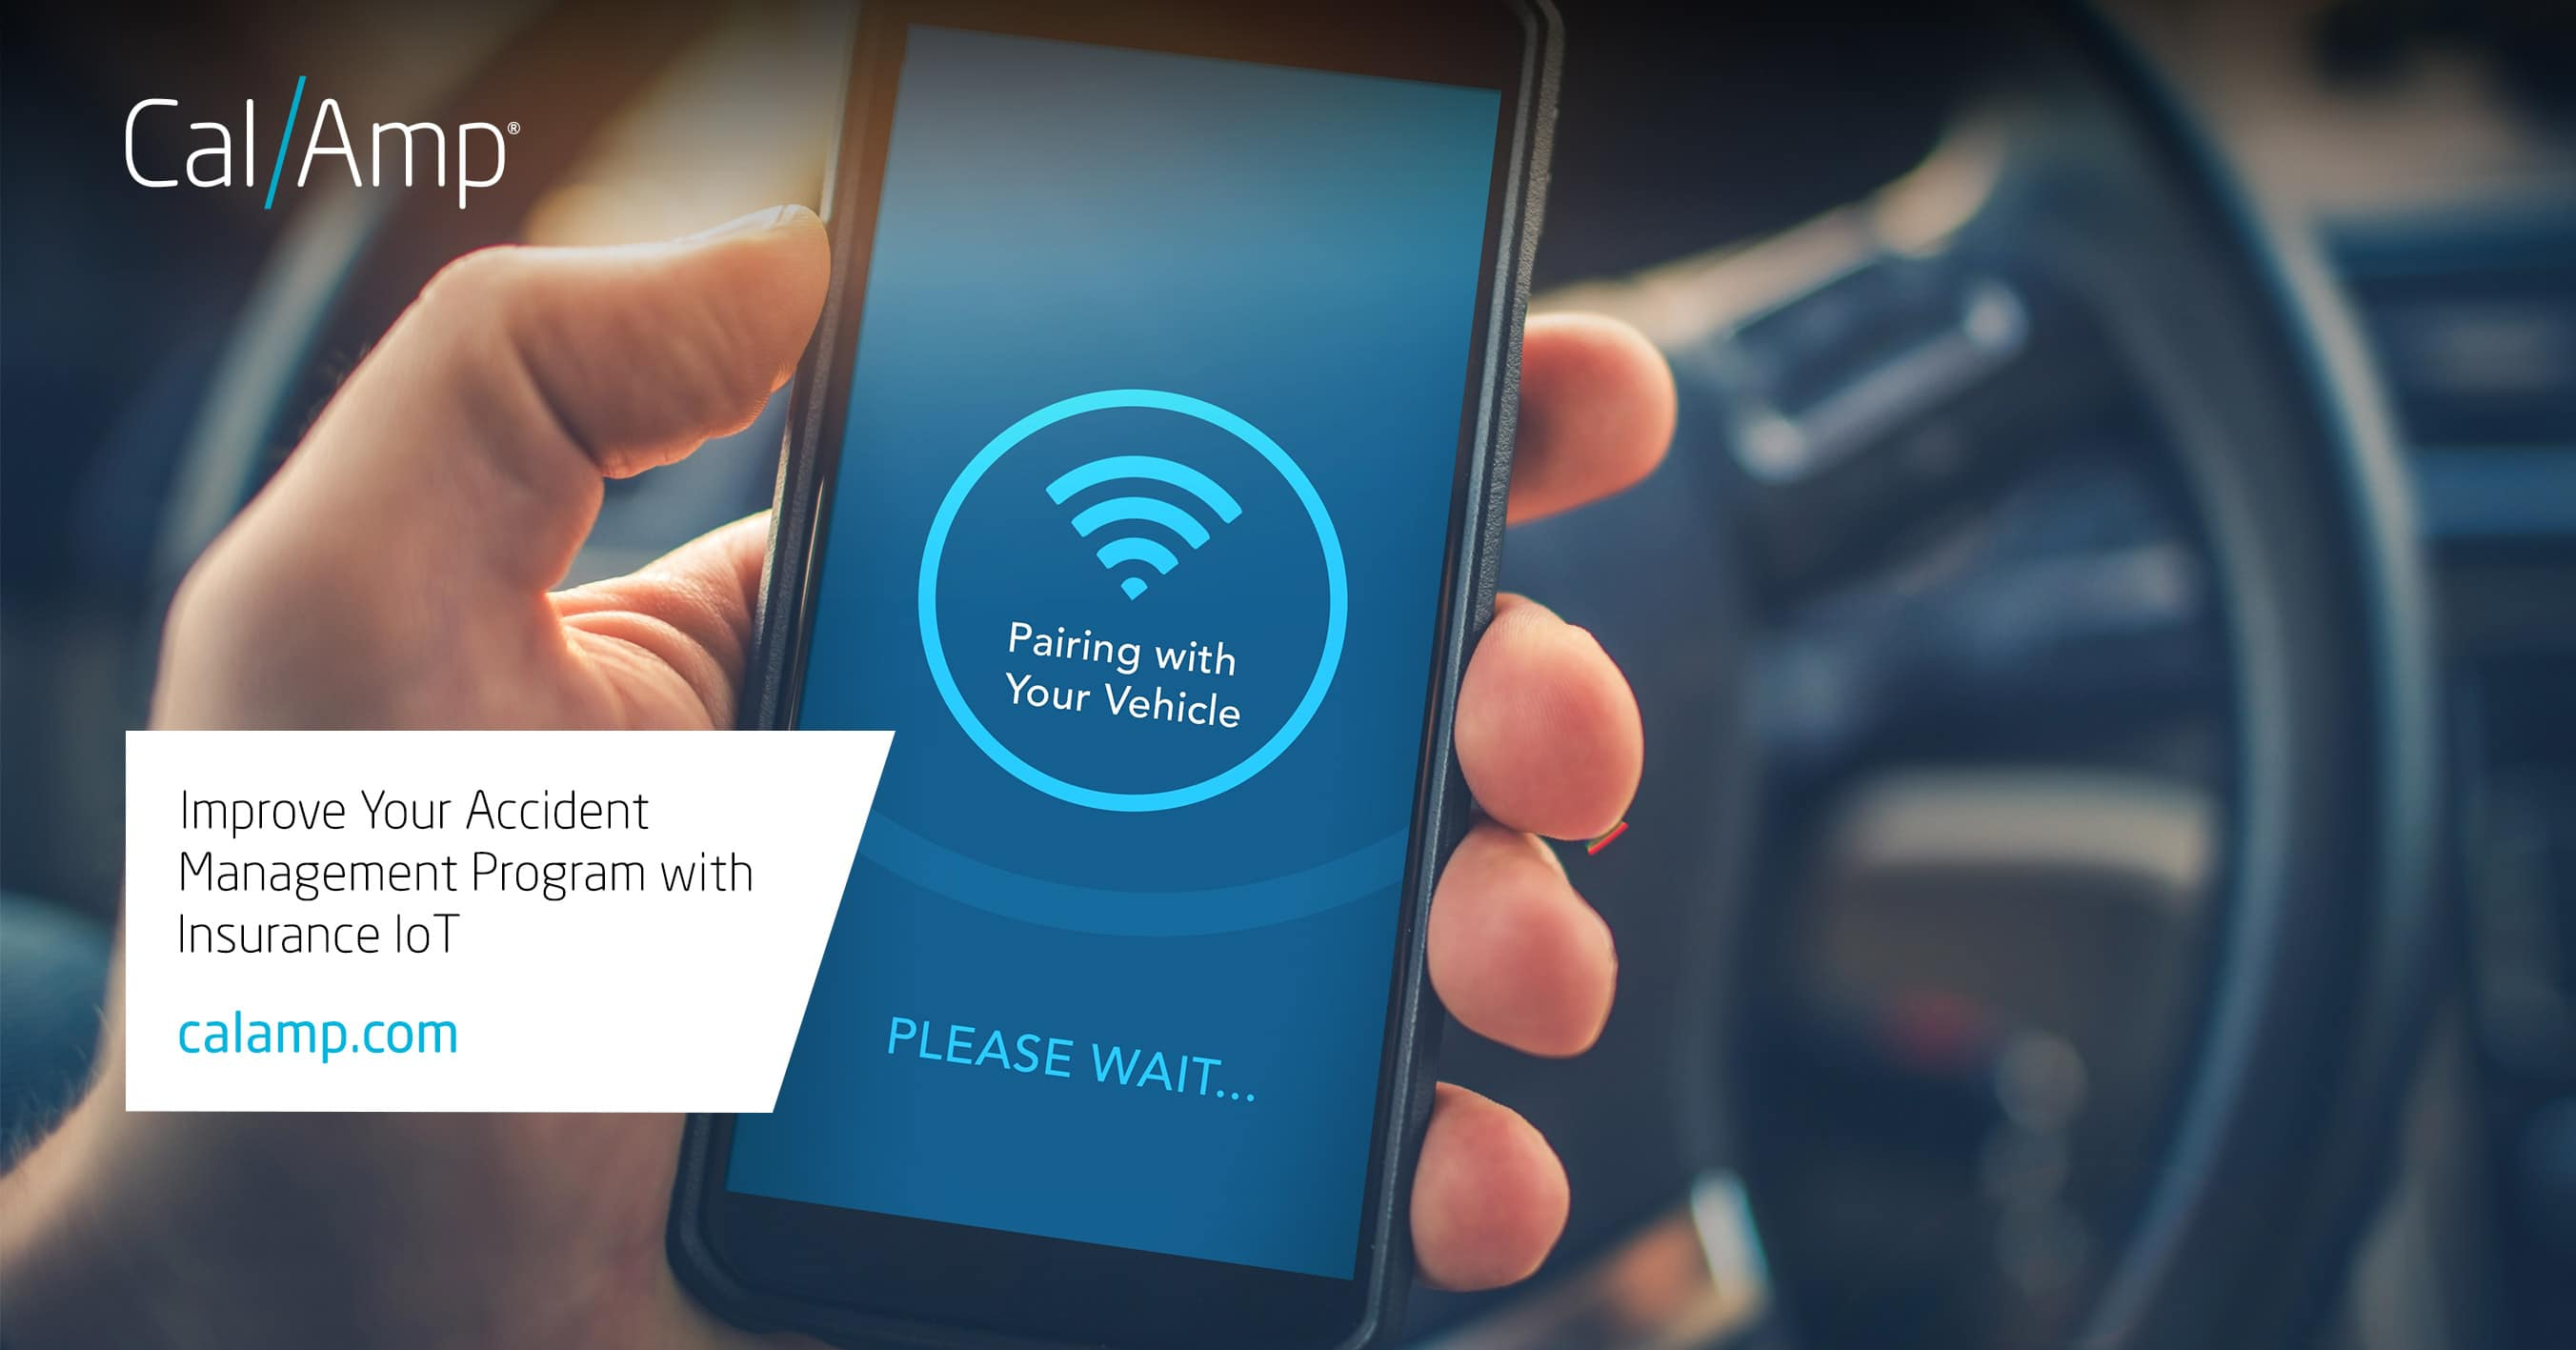 Improve Your Accident Management Program with Insurance IoT